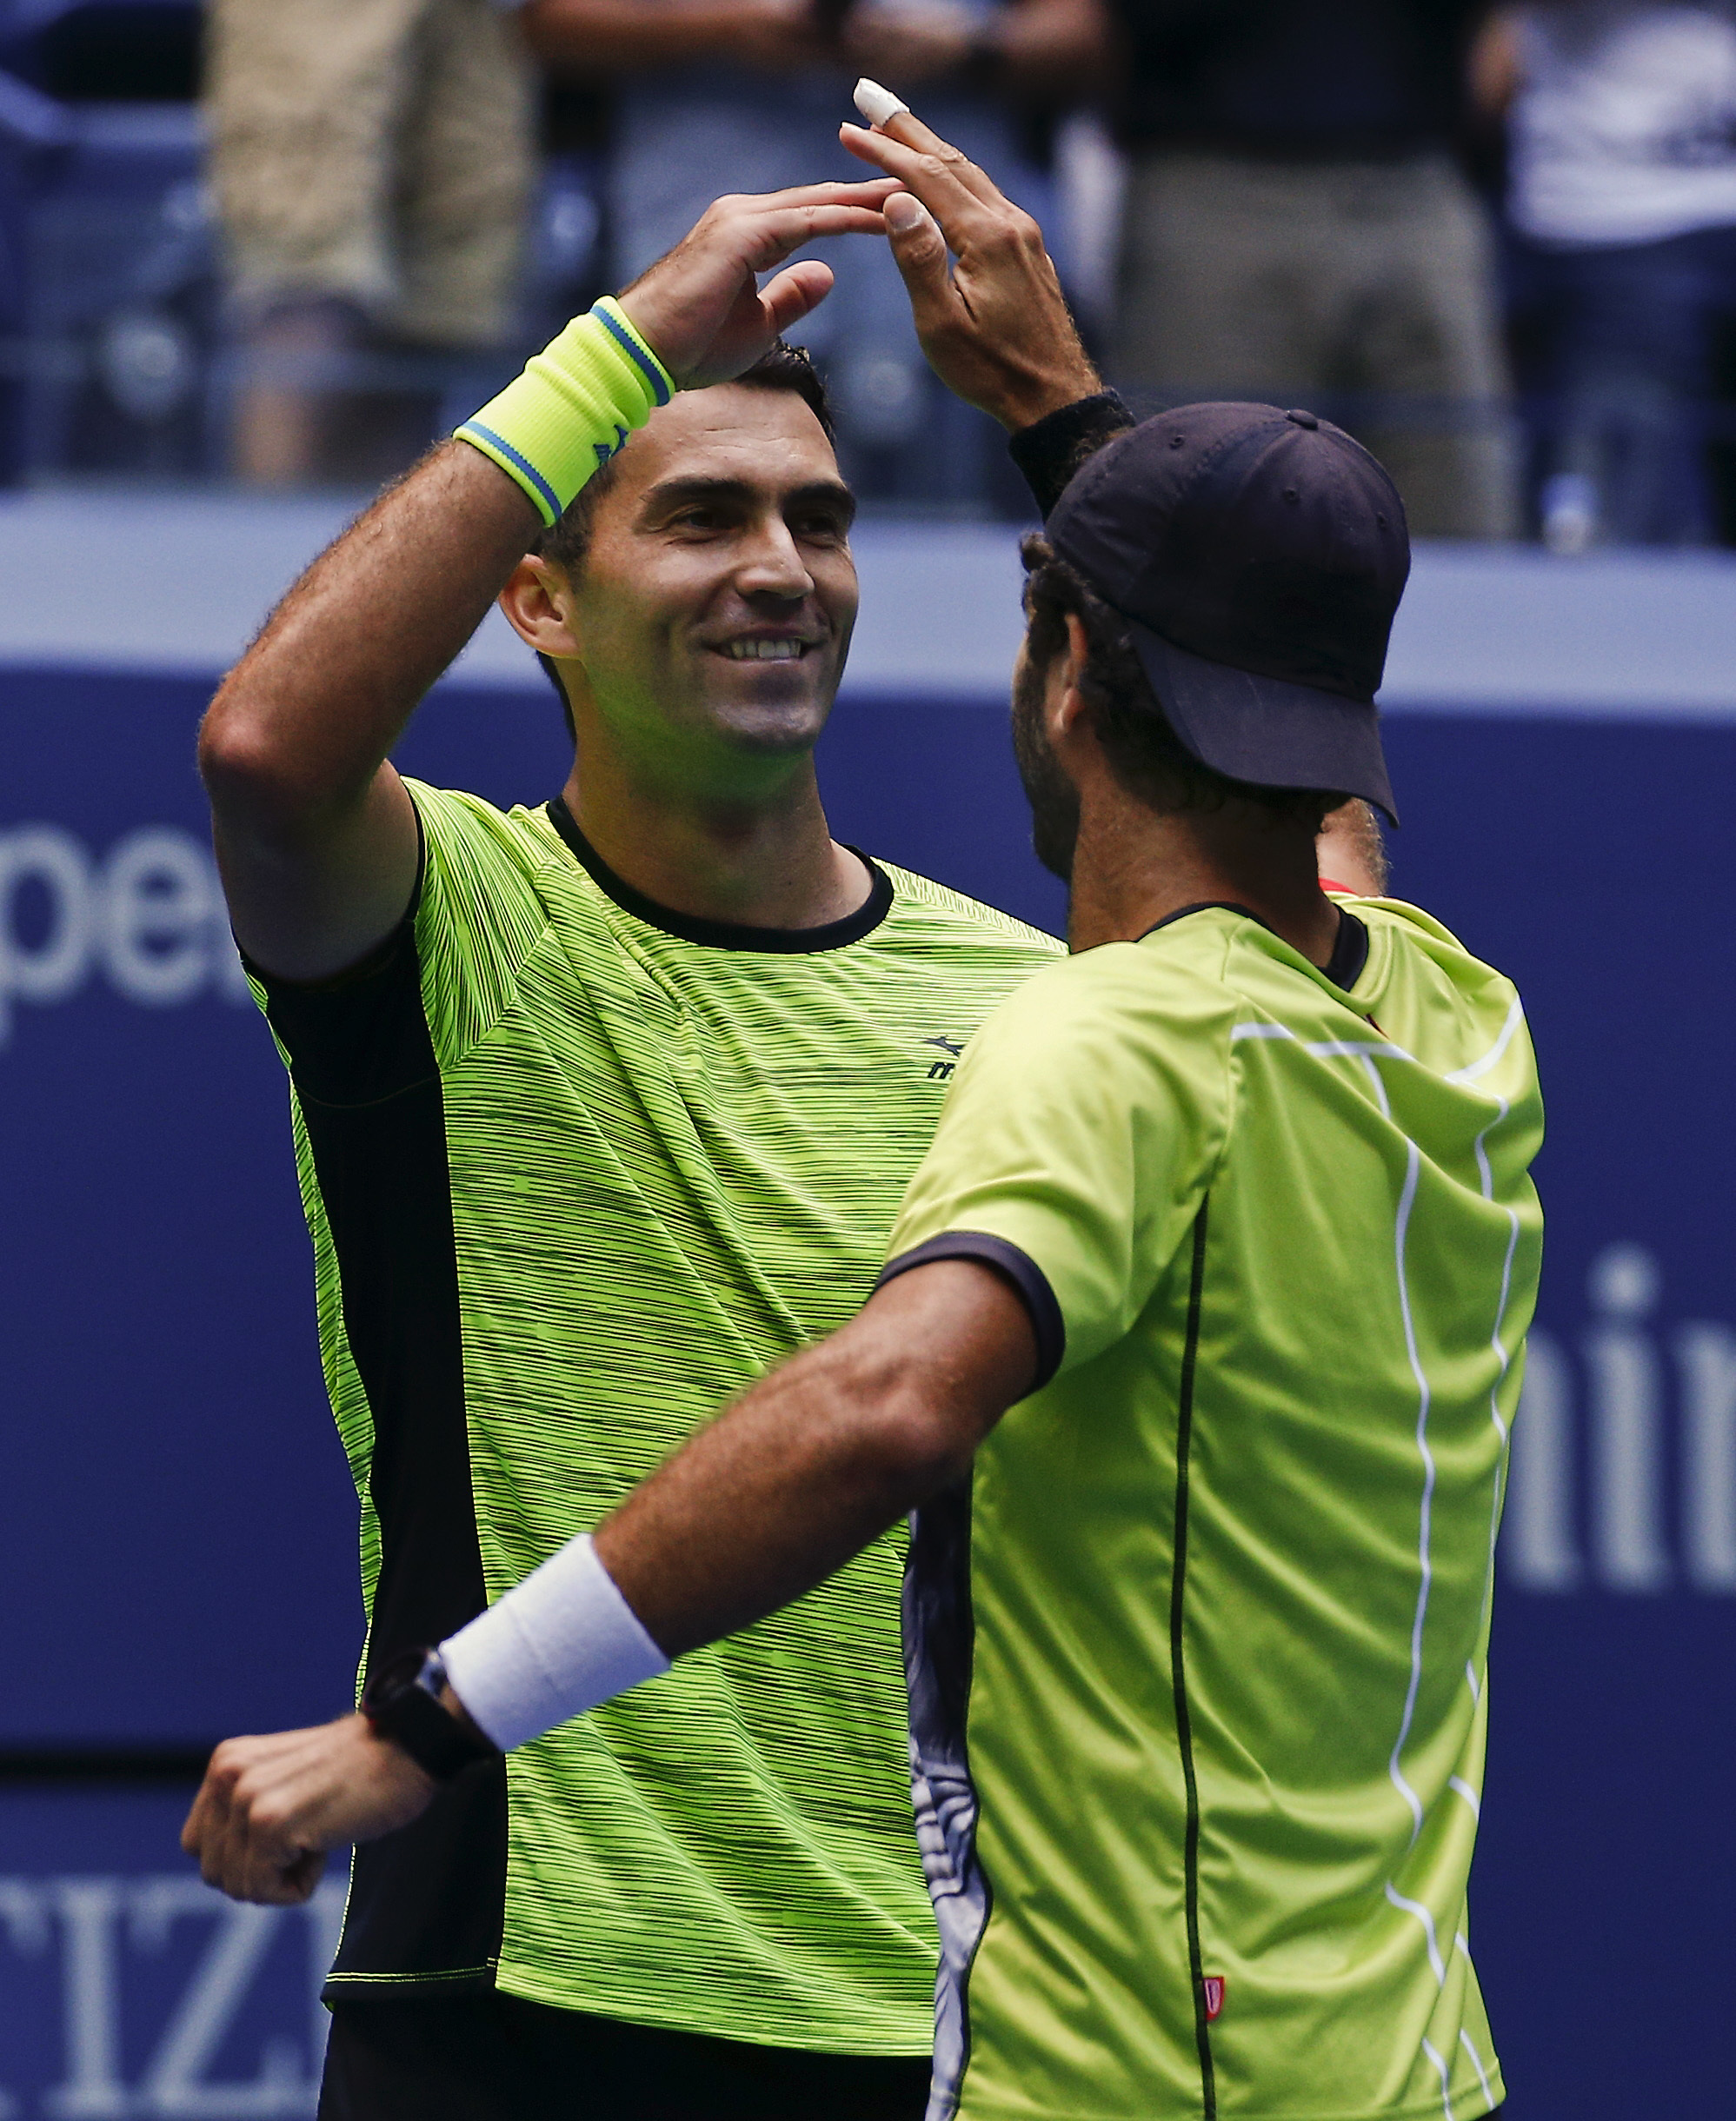 Horia Tecau, of Romania, left, and Jean-Julien Rojer, of Holland, celebrate after beating Feliciano Lopez, of Spain, and Marc Lopez in the doubles final of the U.S. Open tennis tournament, Friday, Sept. 8, 2017, in New York. (AP Photo/Julie Jacobson)